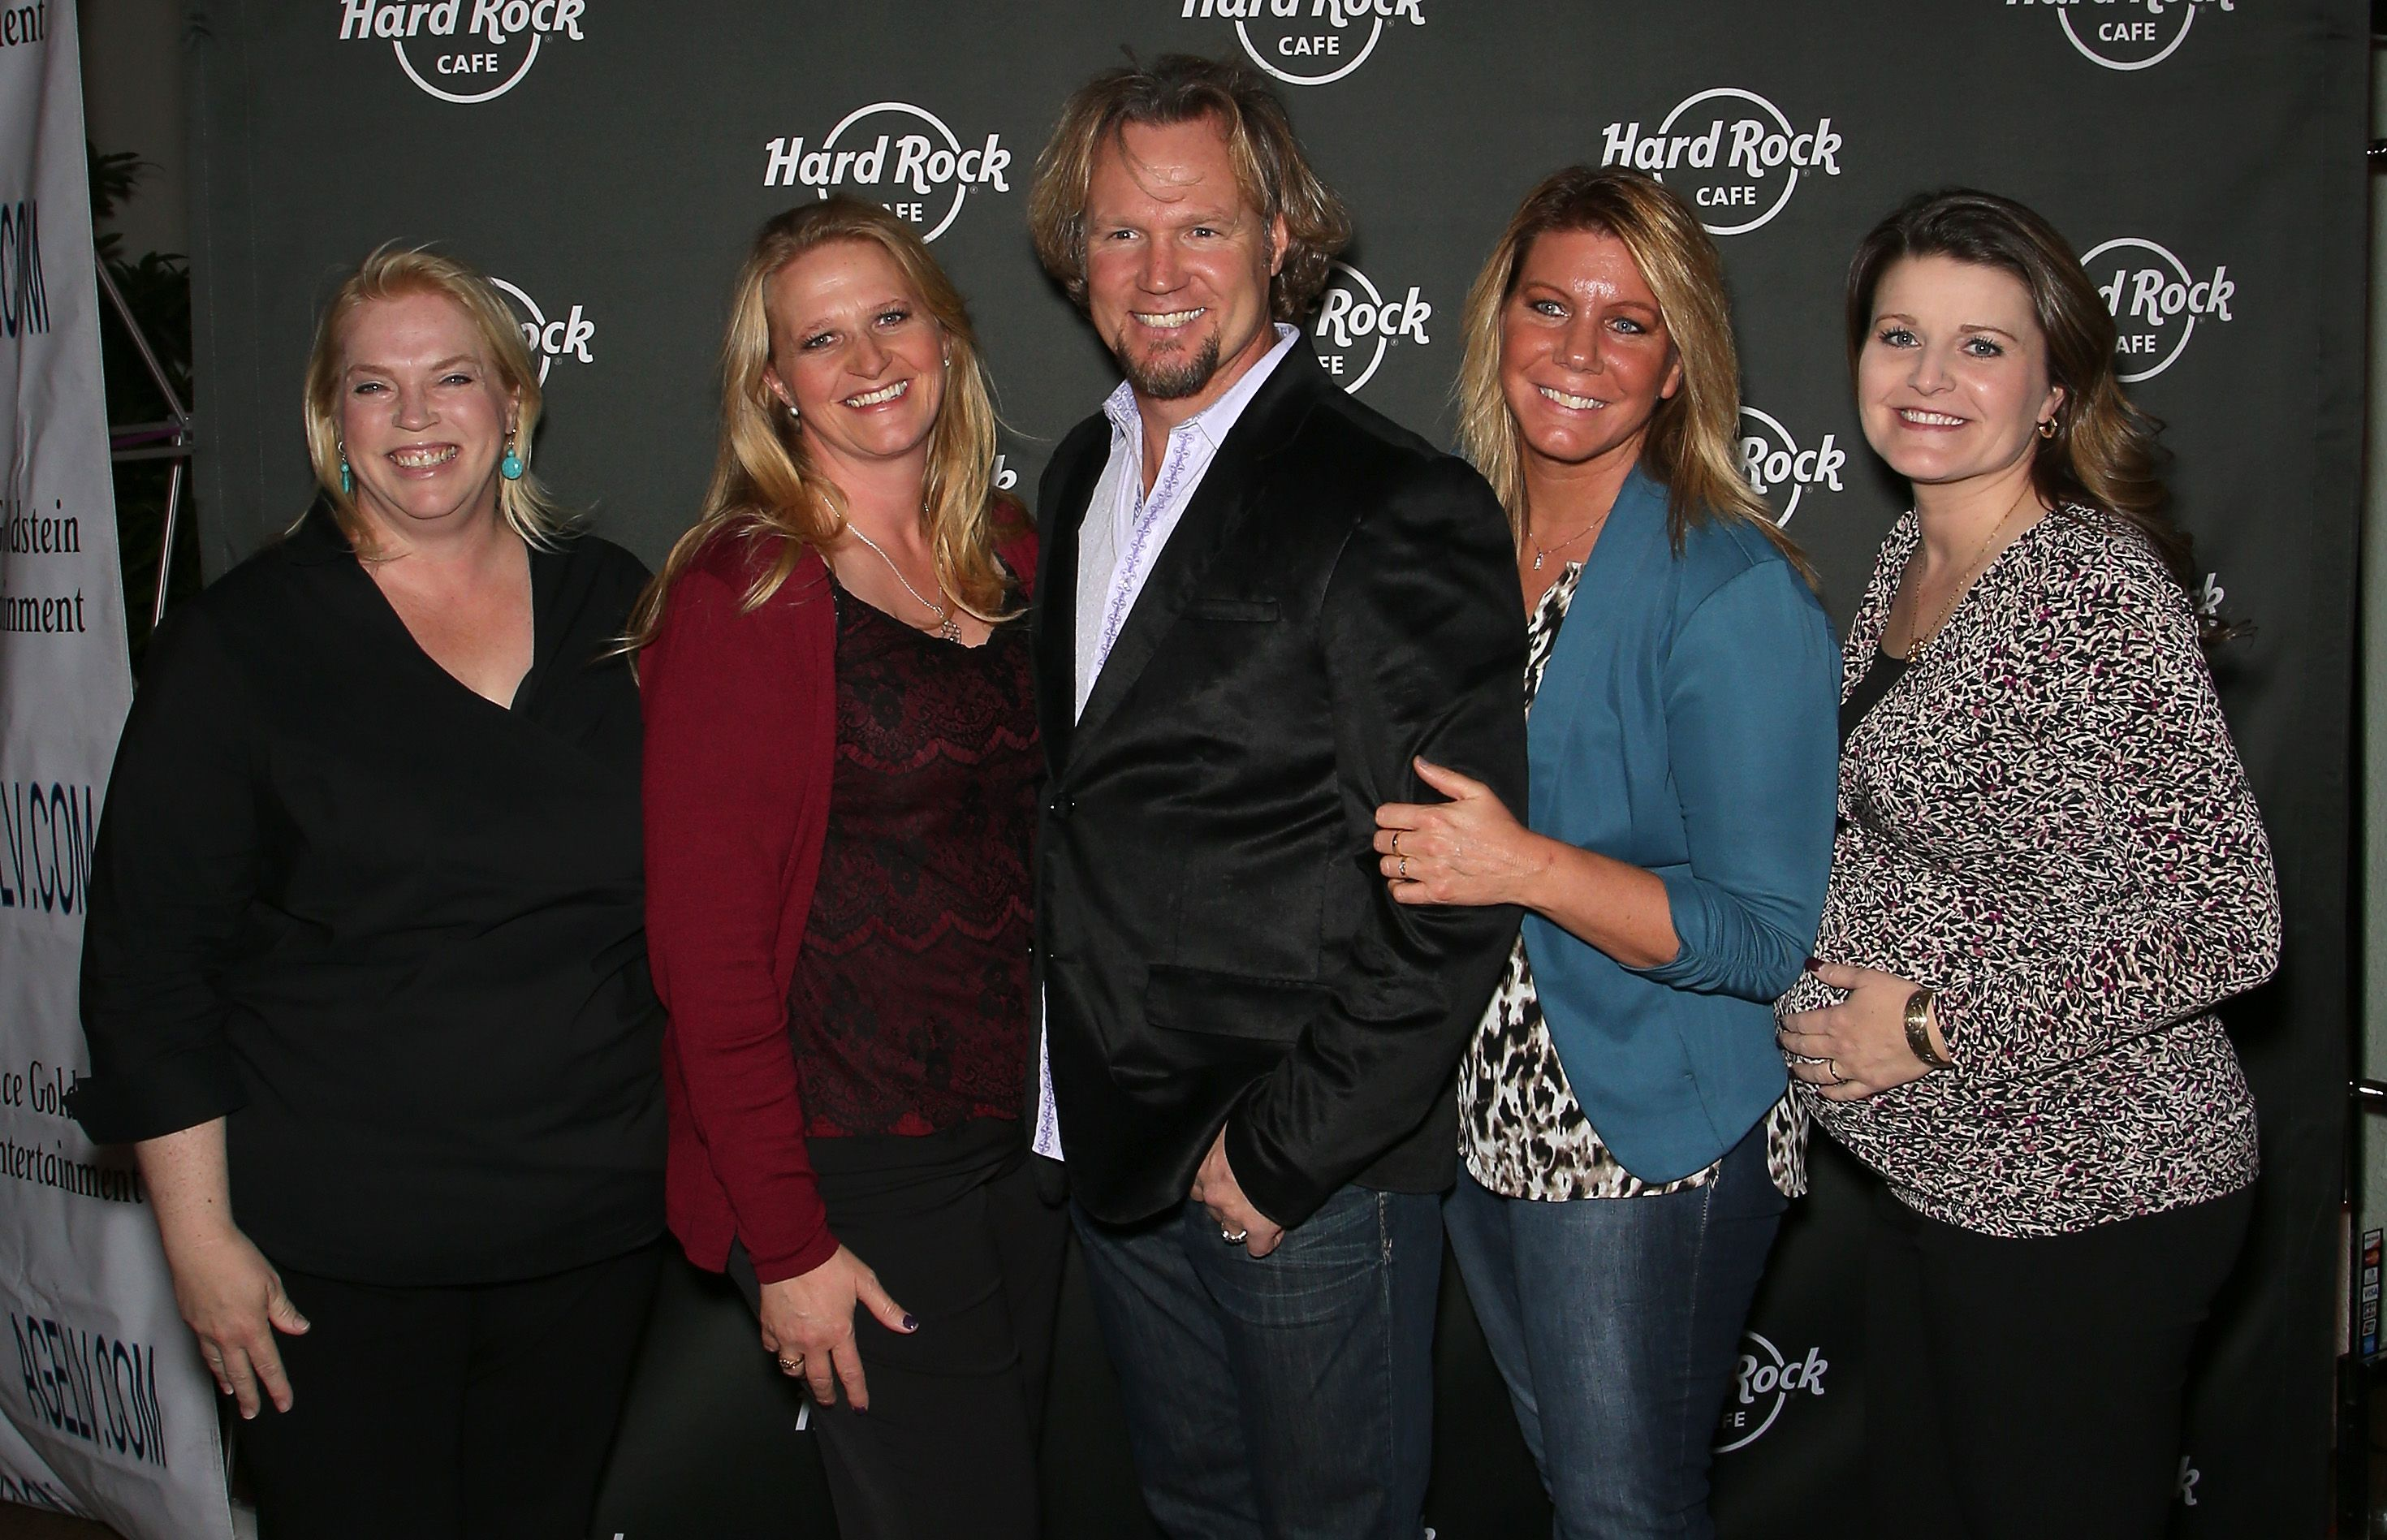 Kody Brown and his wives, Janelle Brown, Christine Brown, Meri Brown and Robyn Brown, during a Hard Rock Cafe Las Vegas event at Hard Rock Hotel's 25th anniversary celebration on October 10, 2015 in Las Vegas, Nevada. | Source: Getty Images